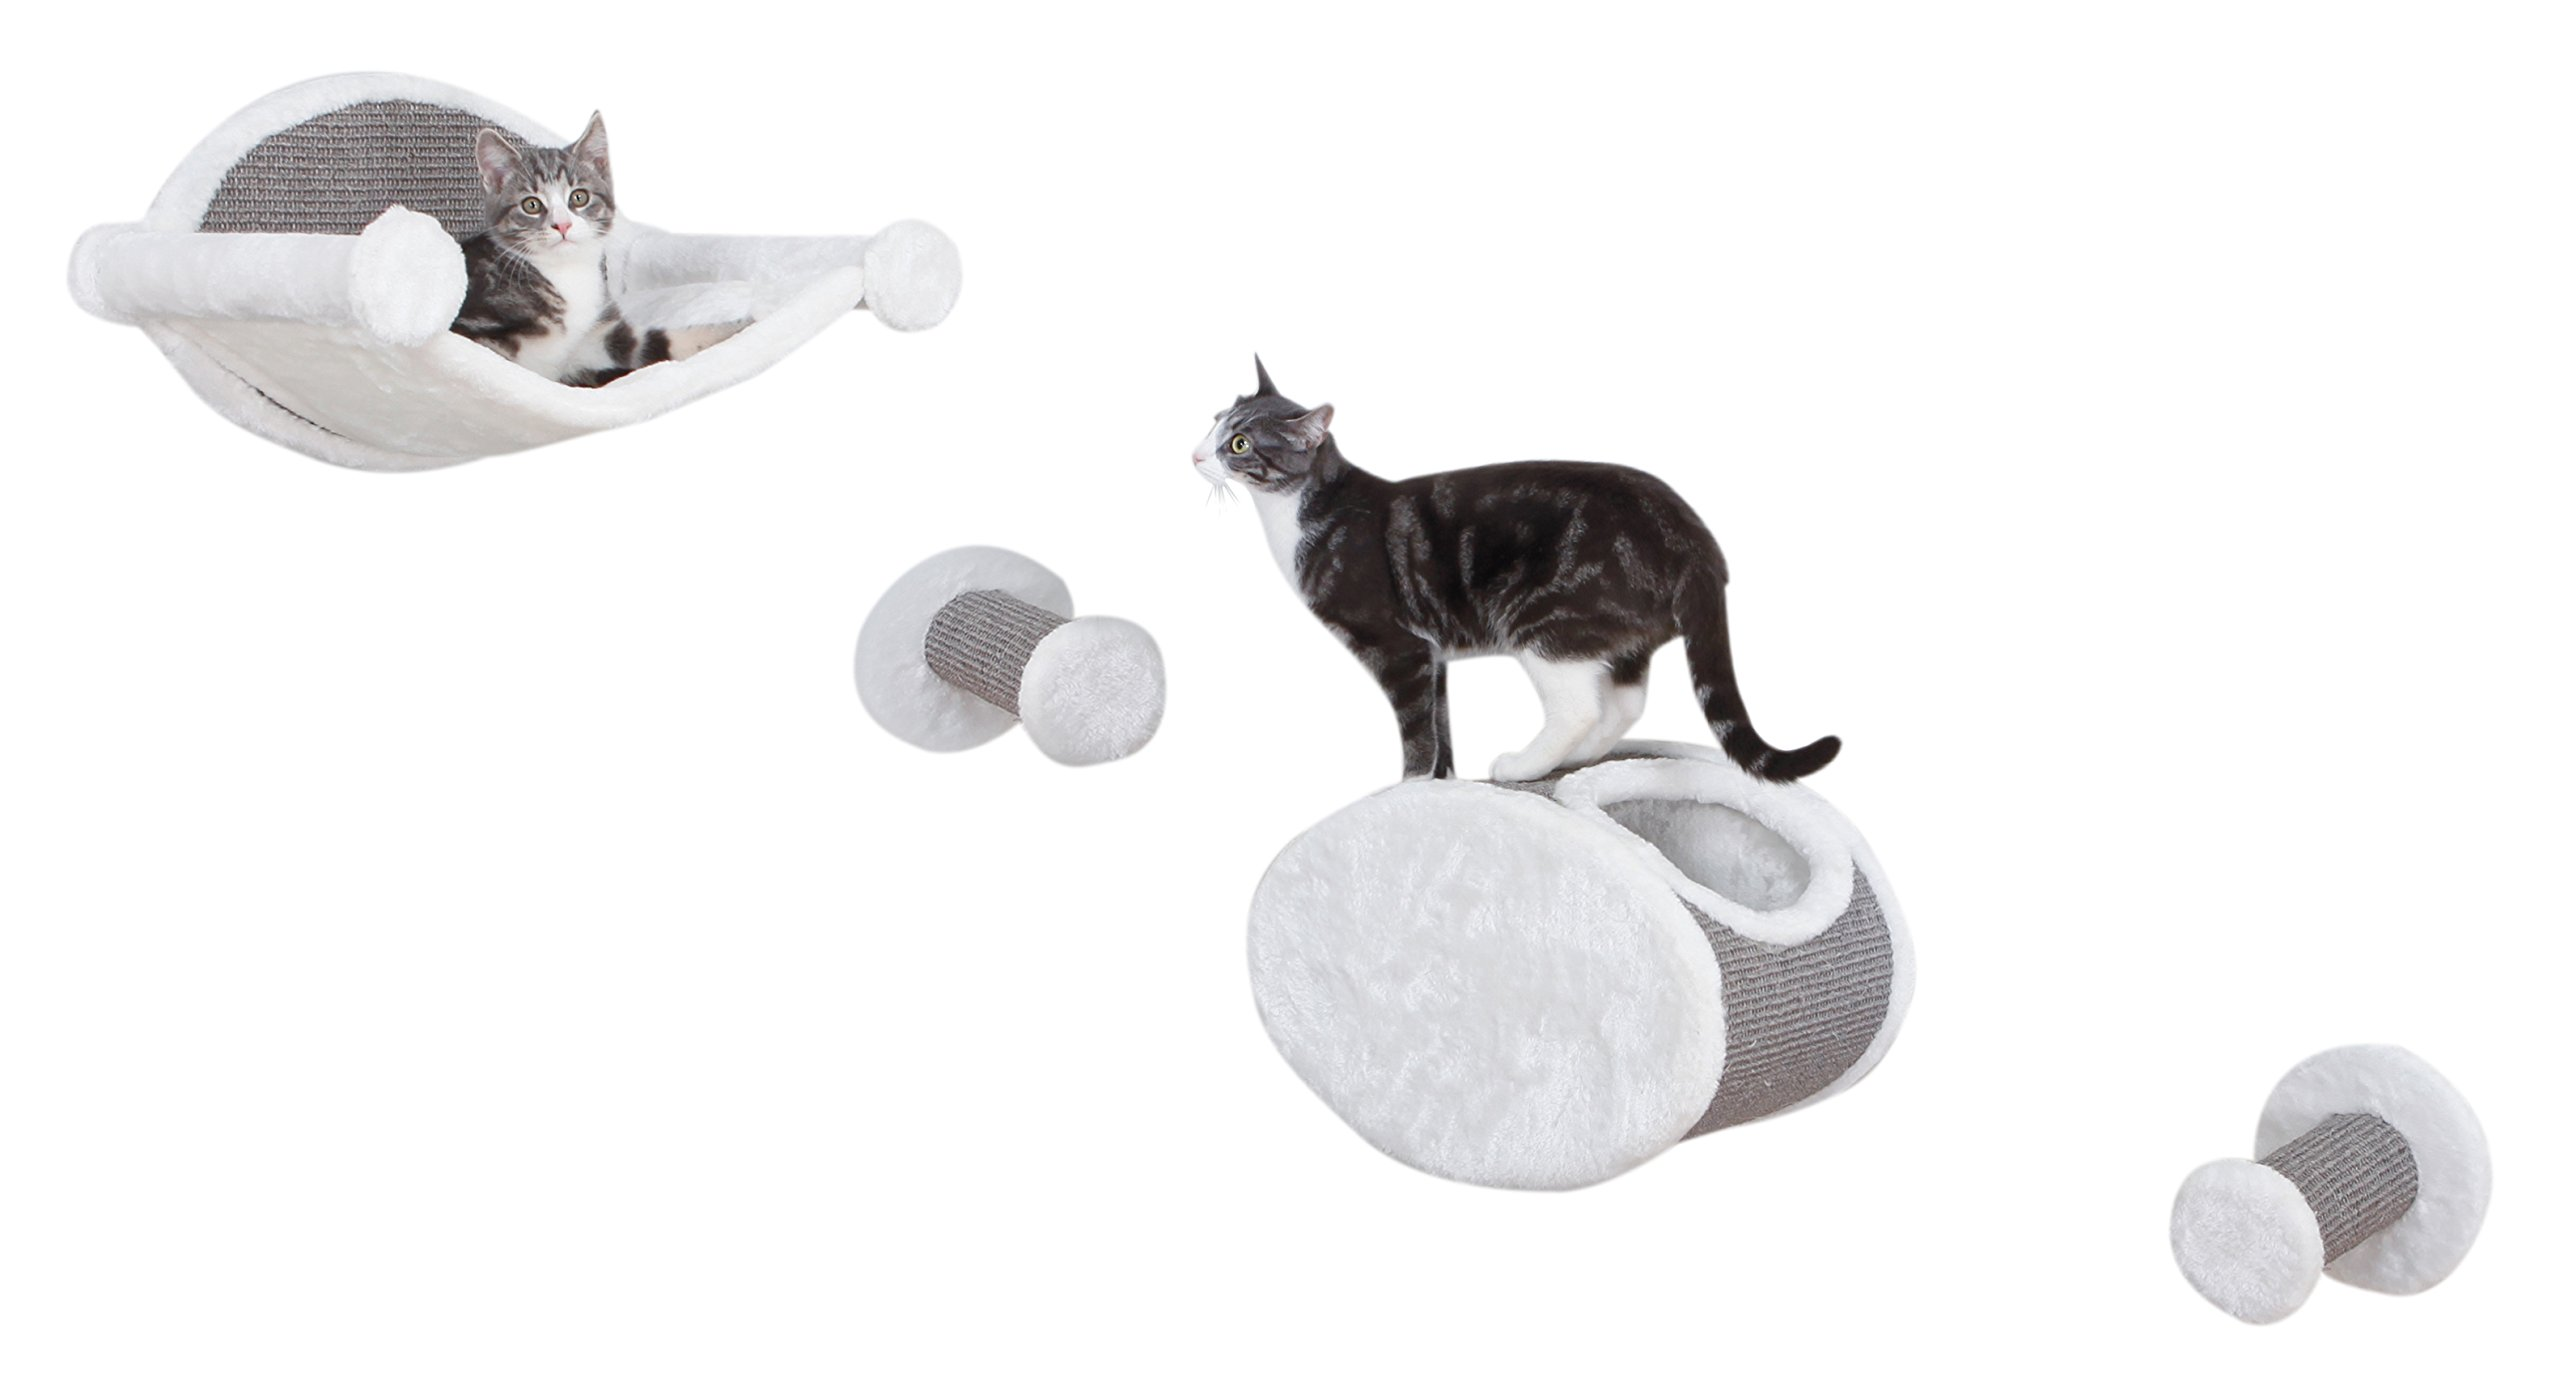 Trixie Pet Products Wall-Mounted Cat Lounging Set by Trixie